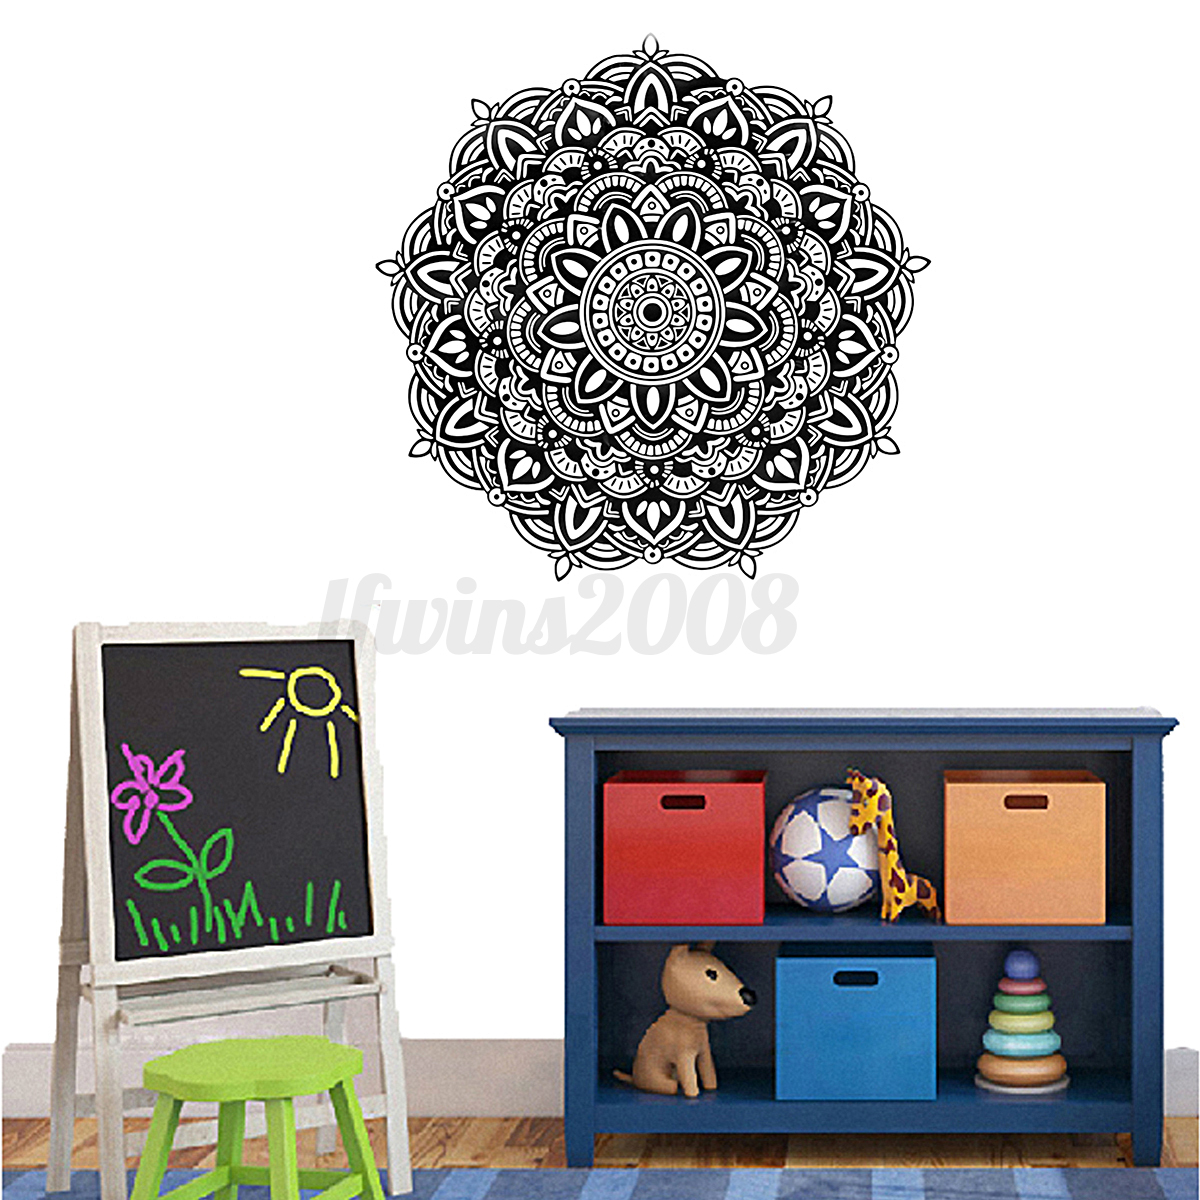 indische blumen mandala wandaufkleber wandtattoo. Black Bedroom Furniture Sets. Home Design Ideas